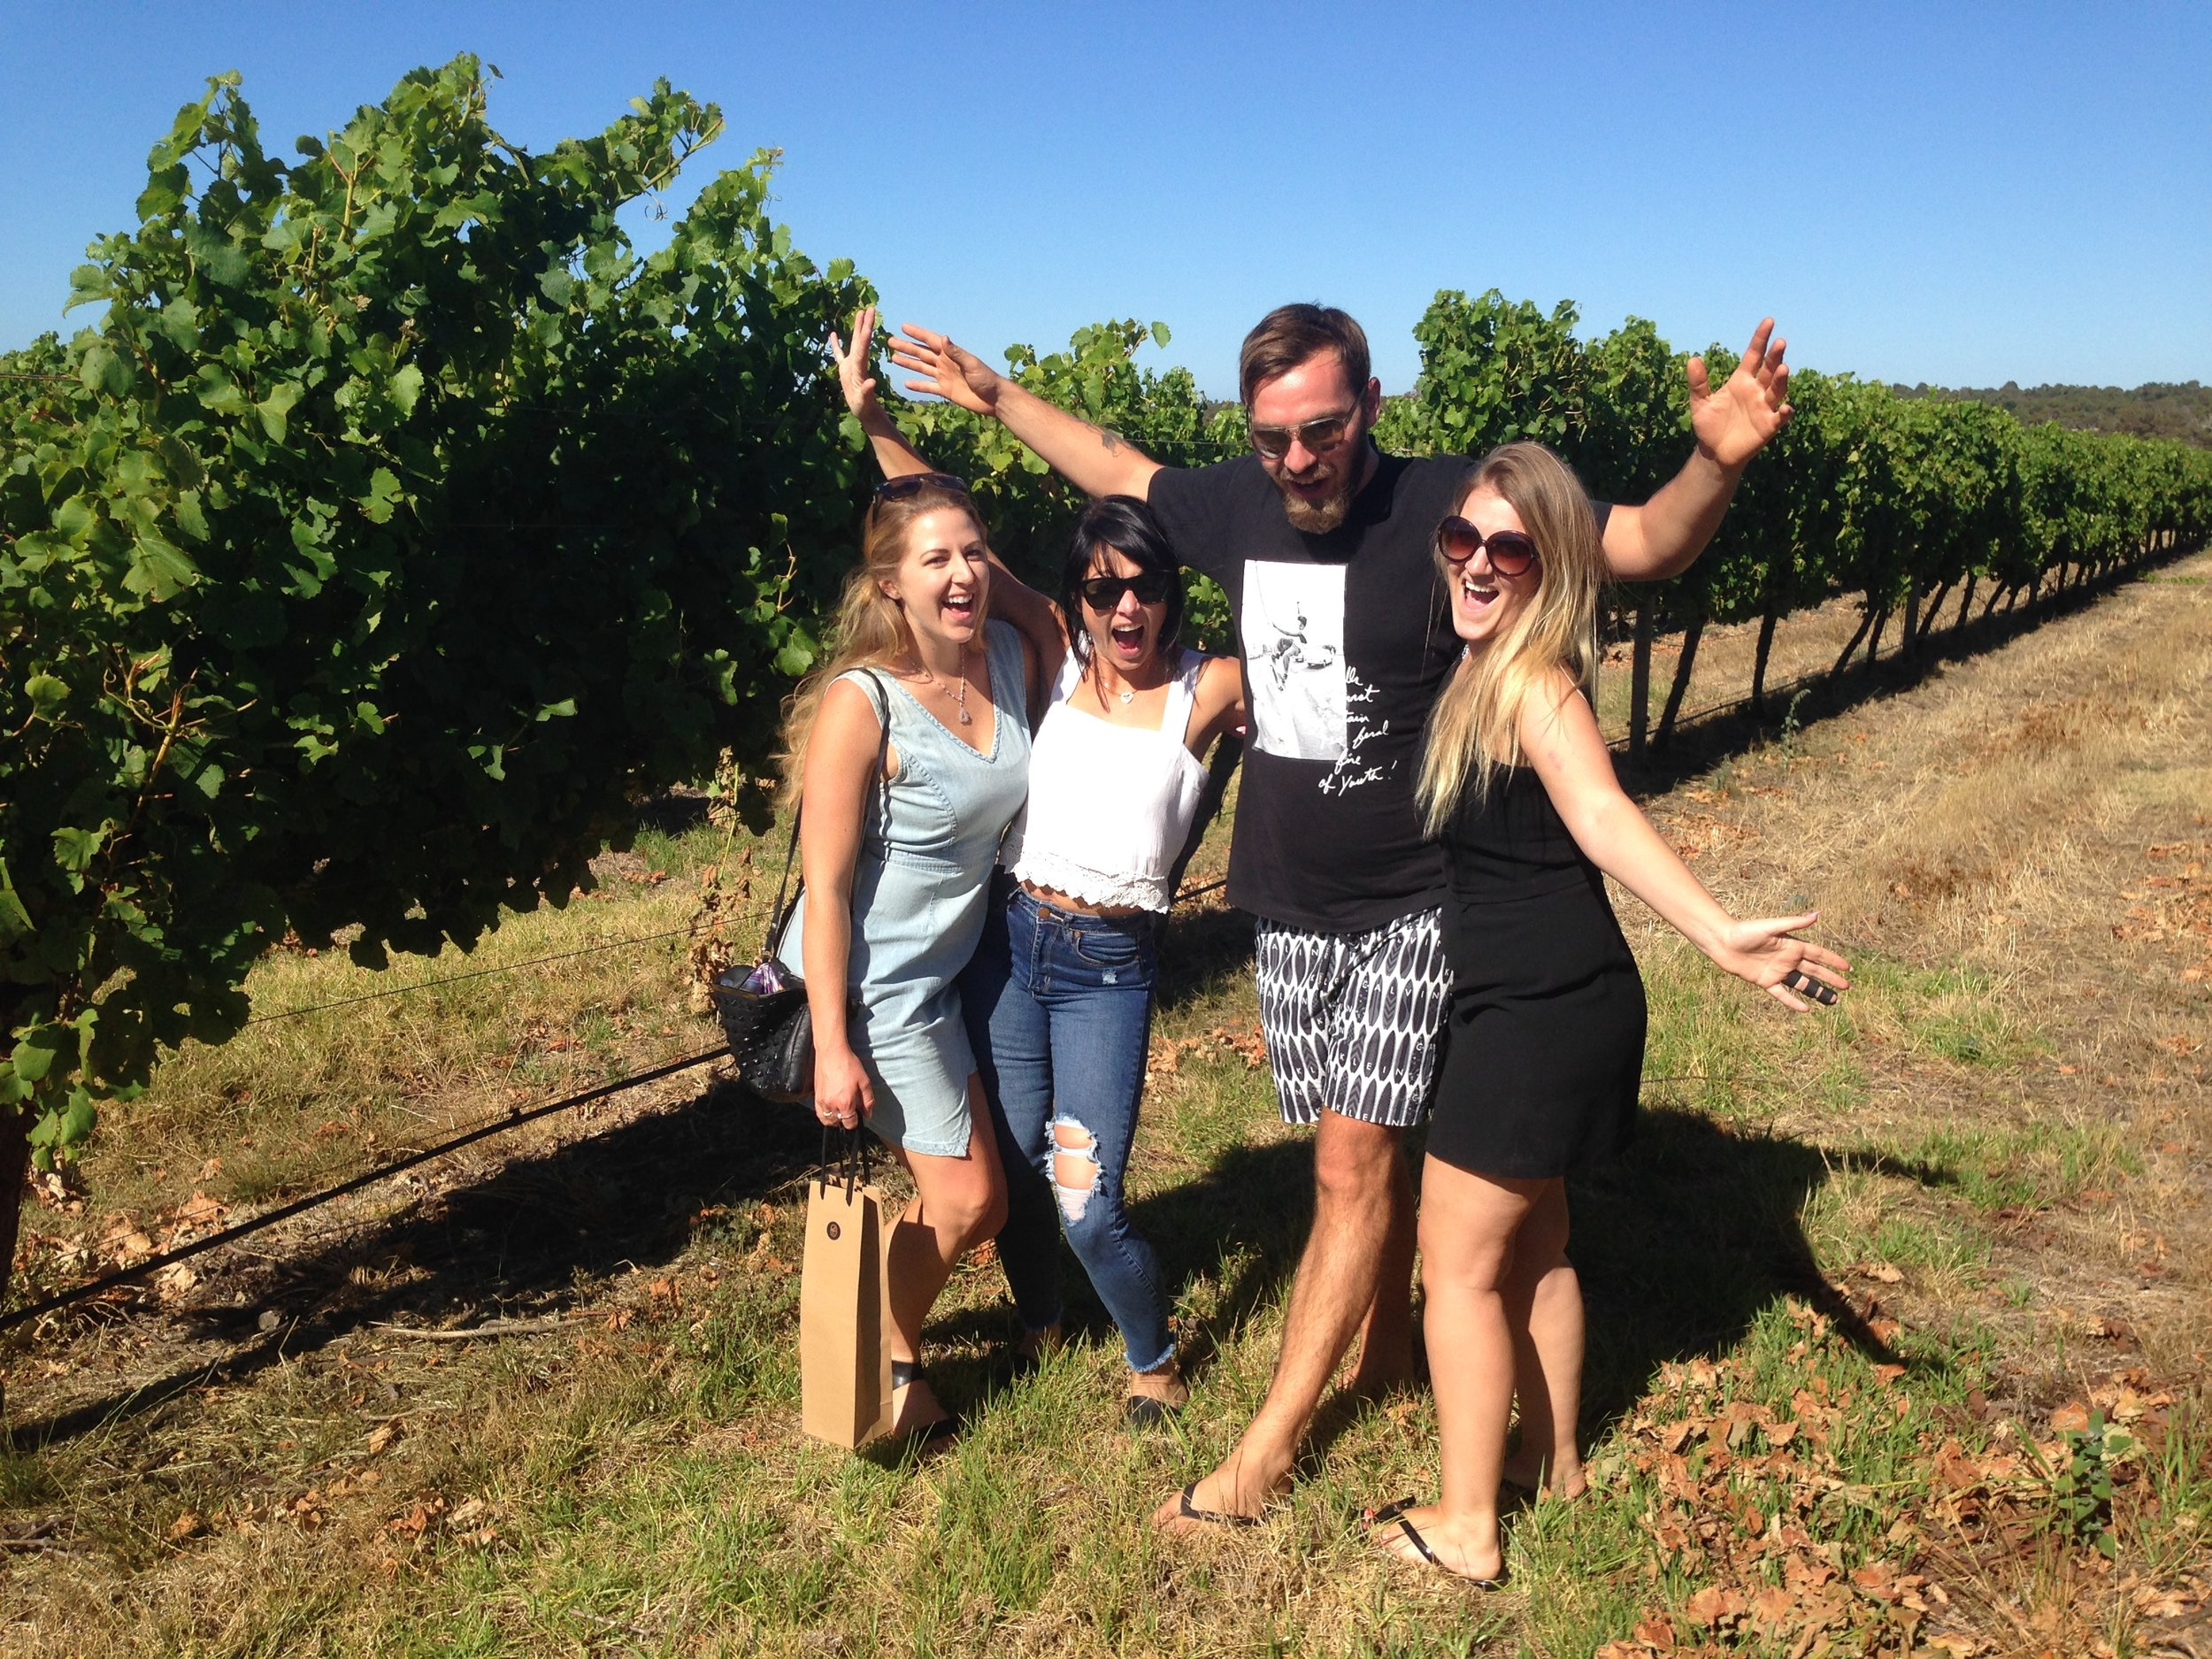 THE PULLMAN GIRKS VERY HAPPY IN THE VINEYARD  GR8 PIC.JPG